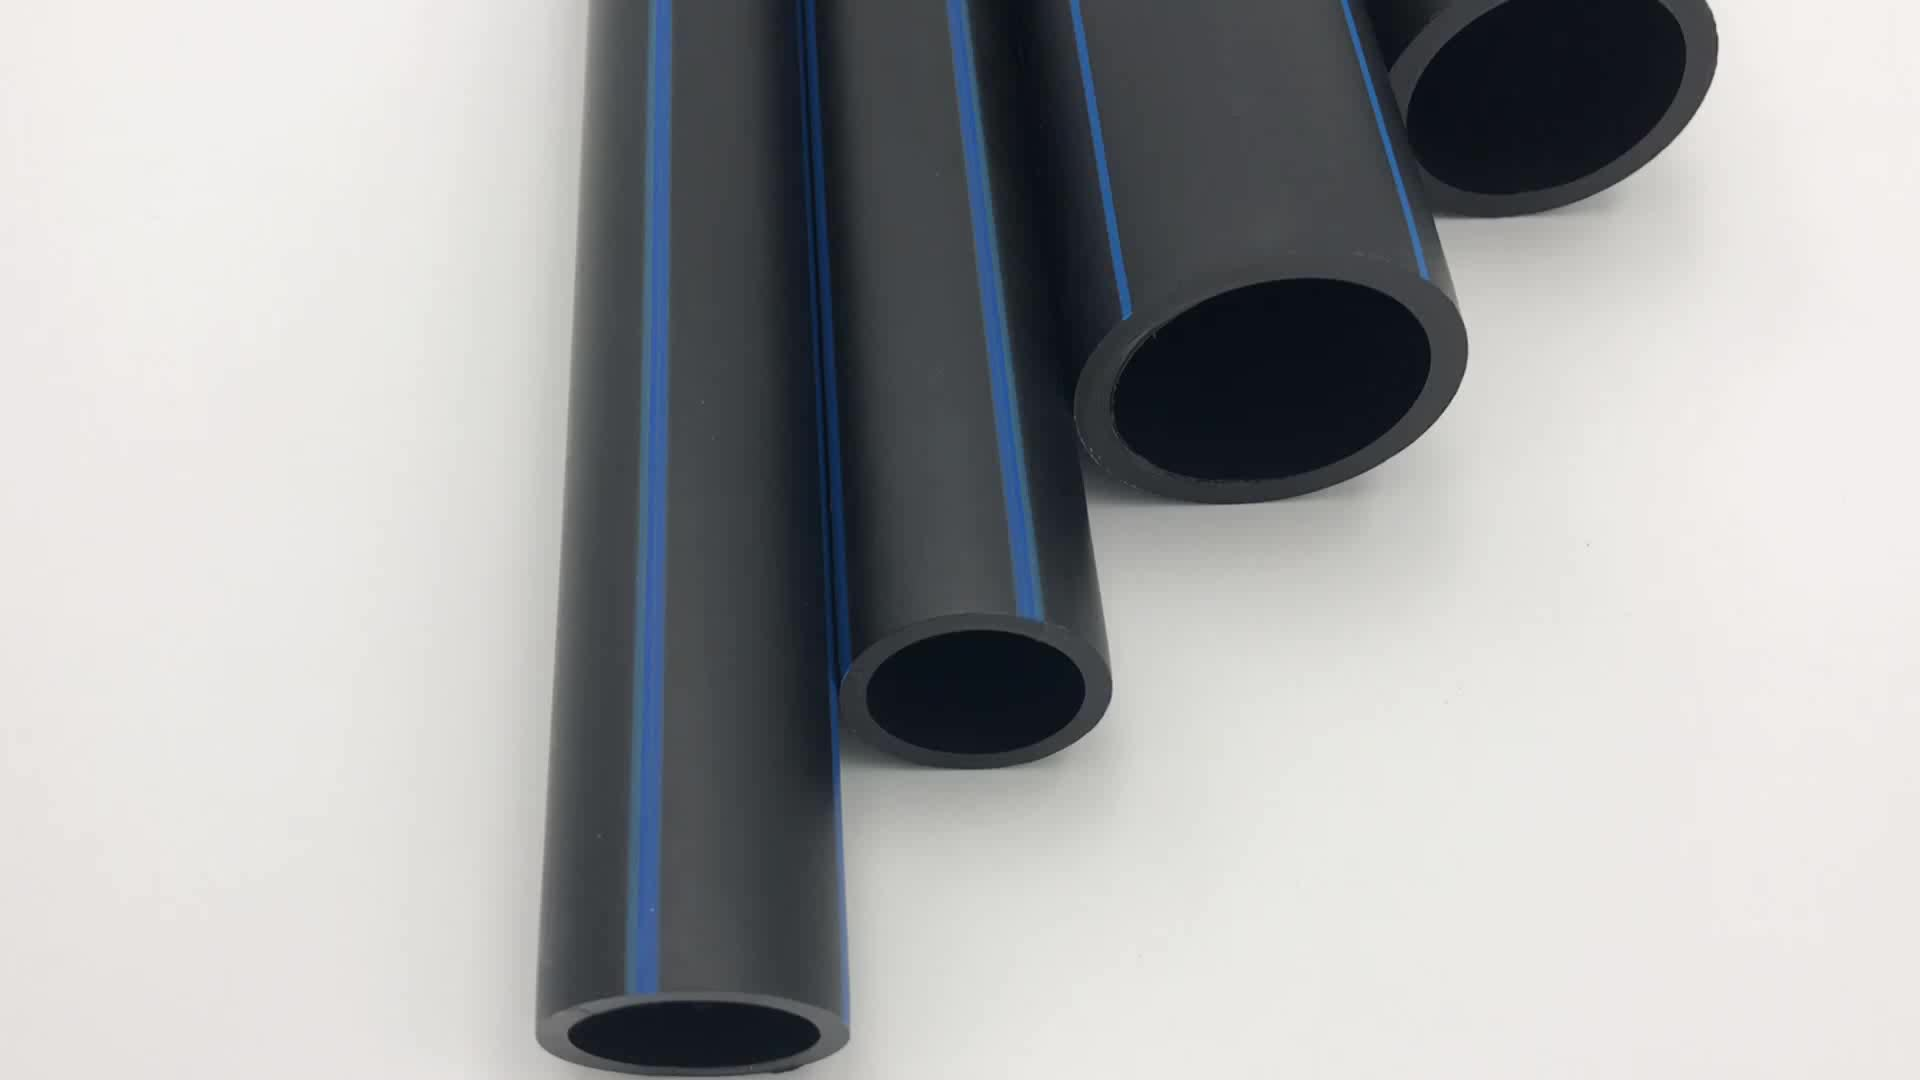 Dn20-Dn110 high-performance large diameter Irrigation Hdpe Price List Black Plastic Water Pipe Roll